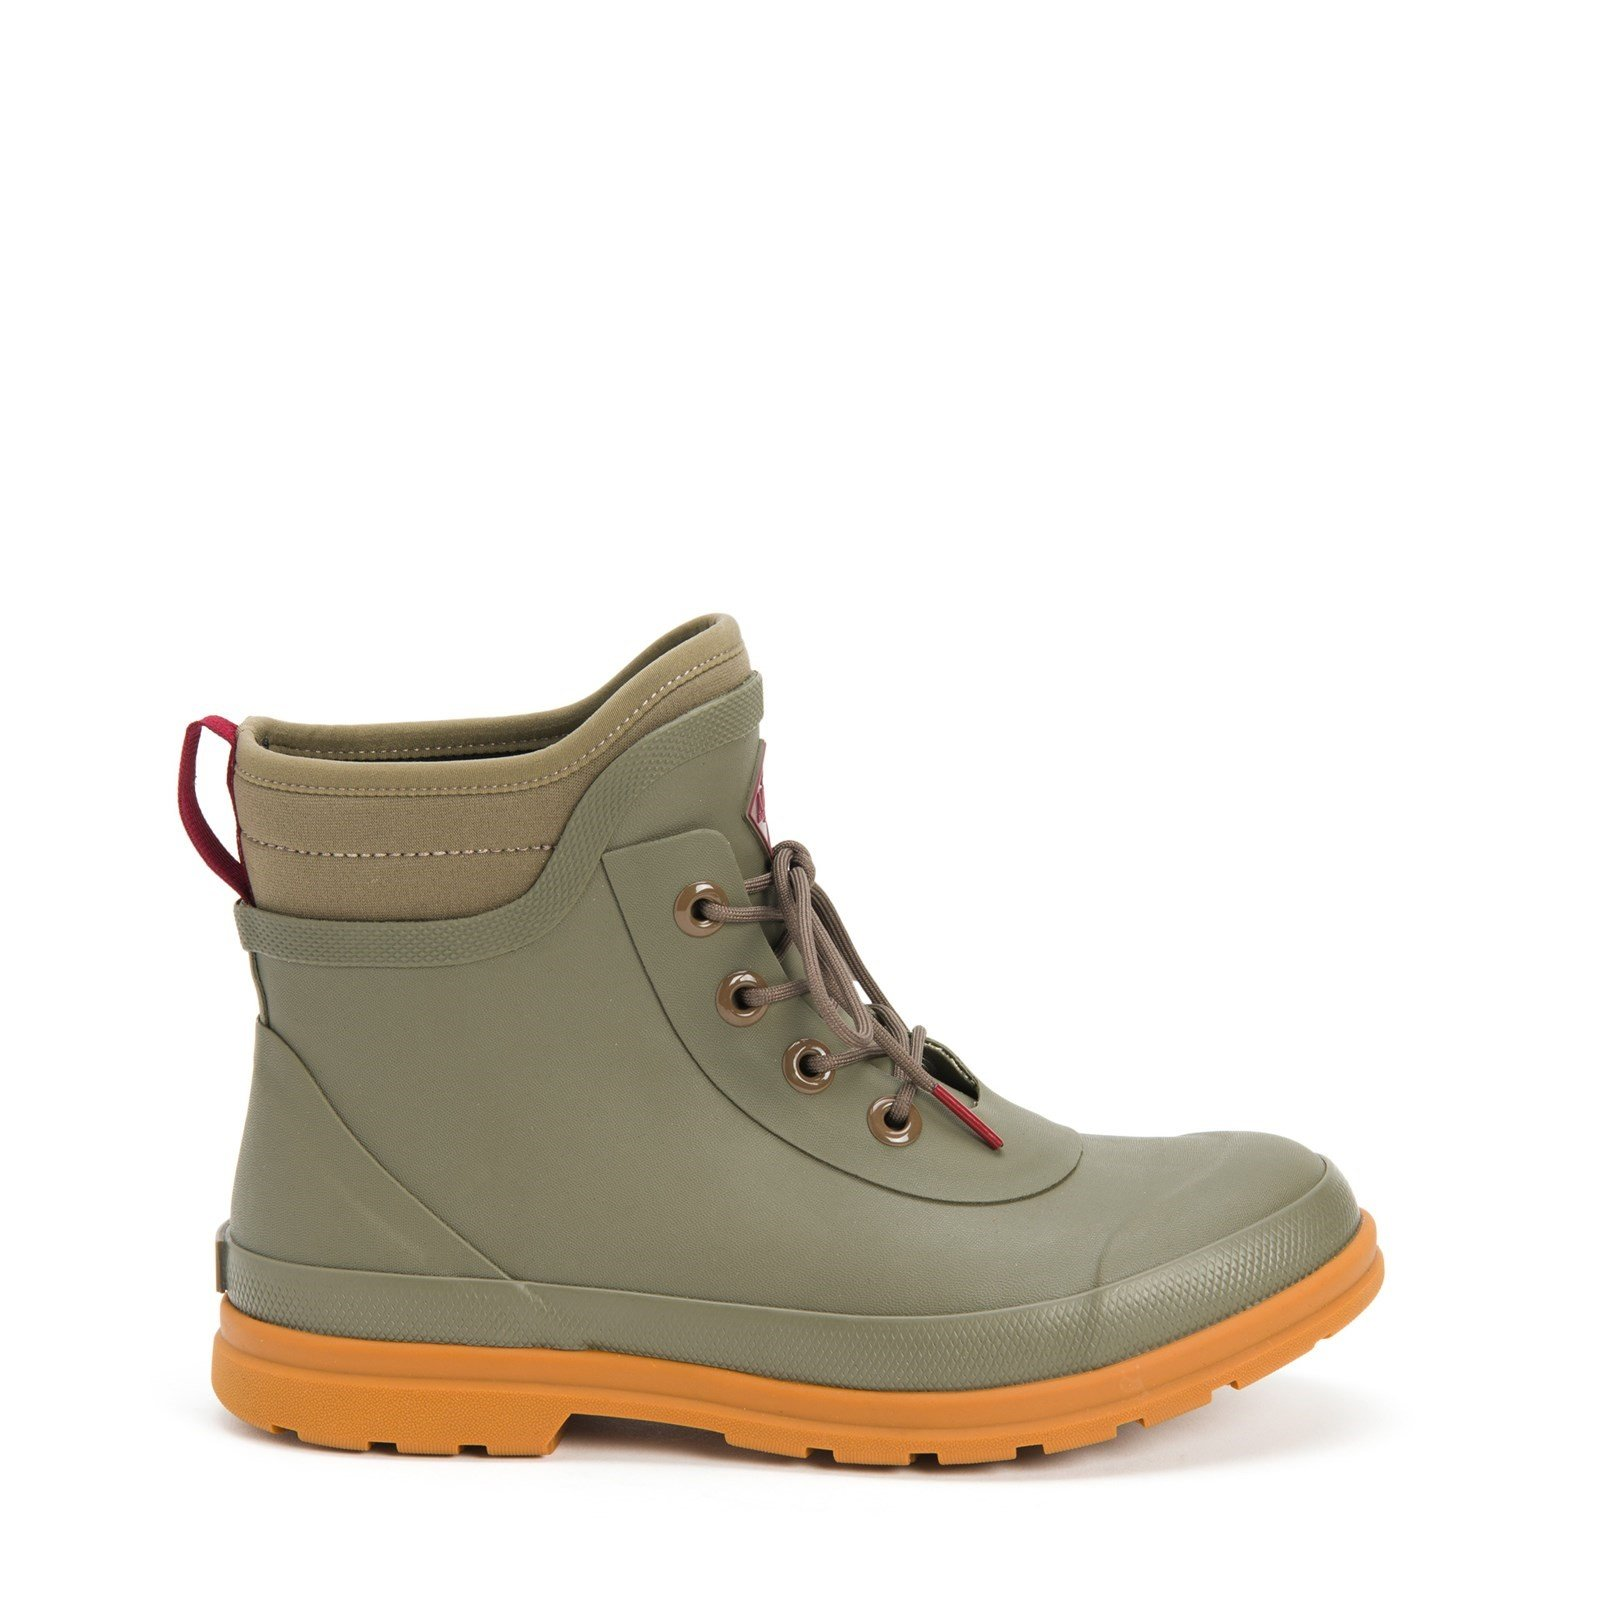 Muck Boots Women's Originals Lace Up Ankle Boot Various Colours 30079 - Taupe 6